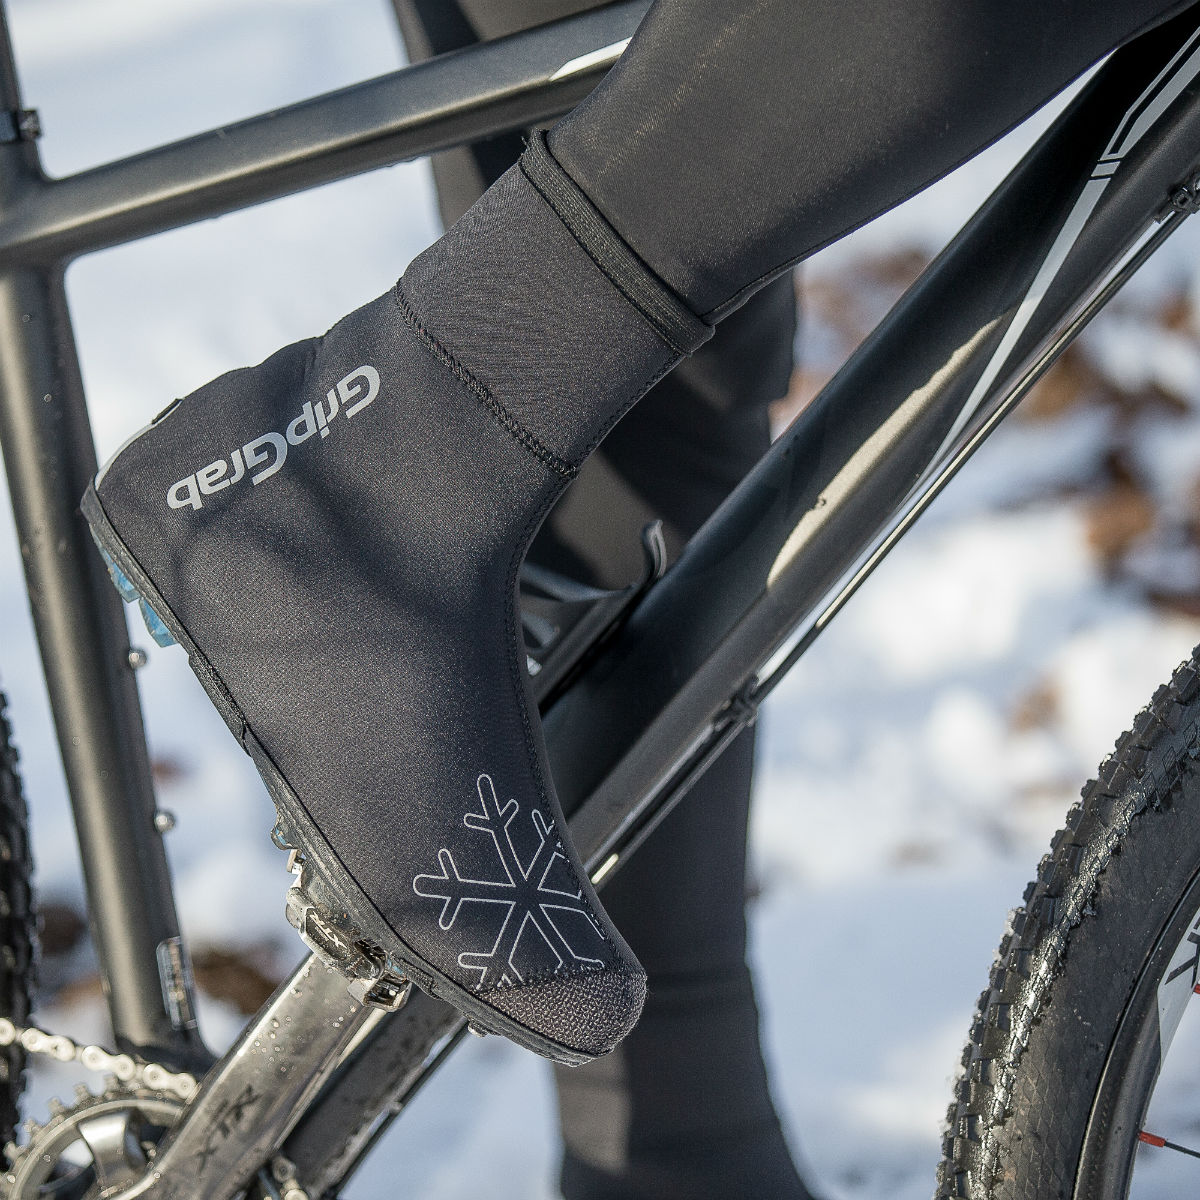 Overshoes for the worst cold are often made of neoprene.